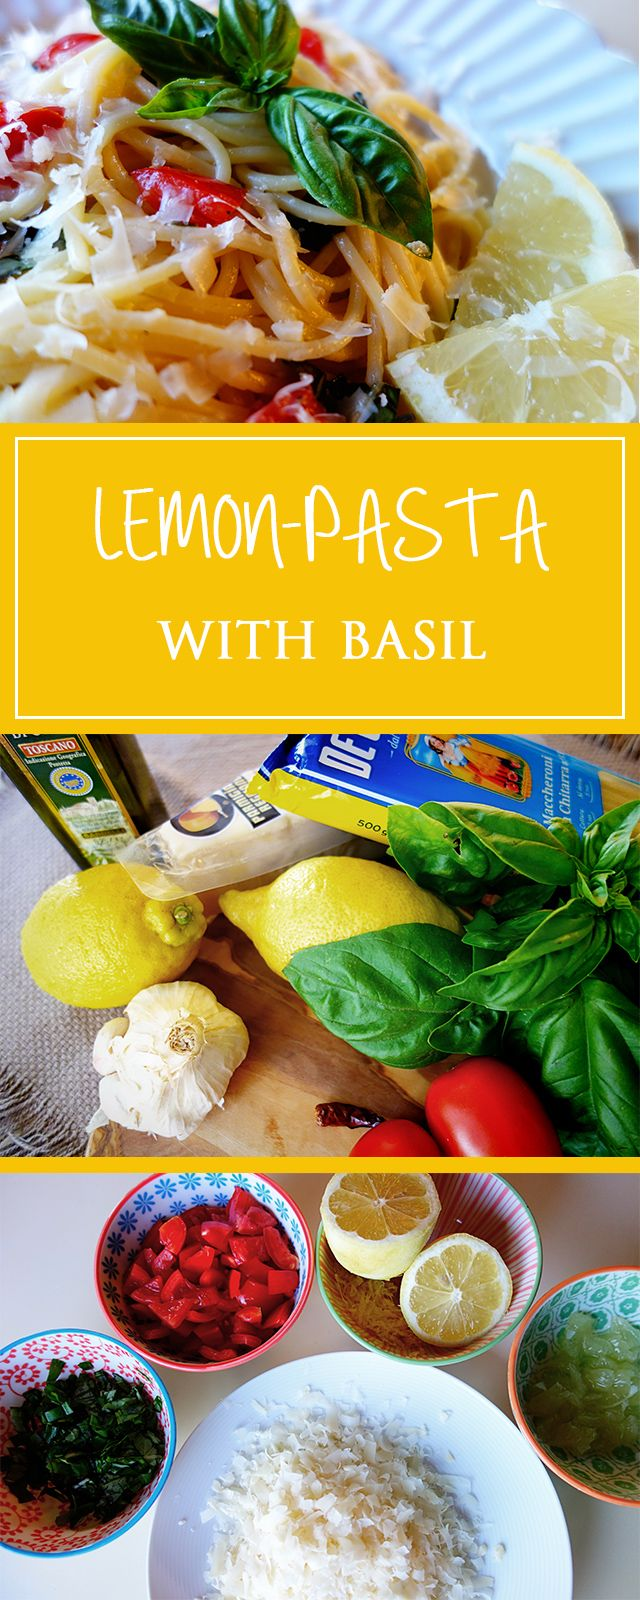 Lemon-Pasta with basil - a fresh, quick & wonderful lemony recipe! Moreover gluten-free, vegetarian & perfect in summertime ❤️  cucina-con-amore.com